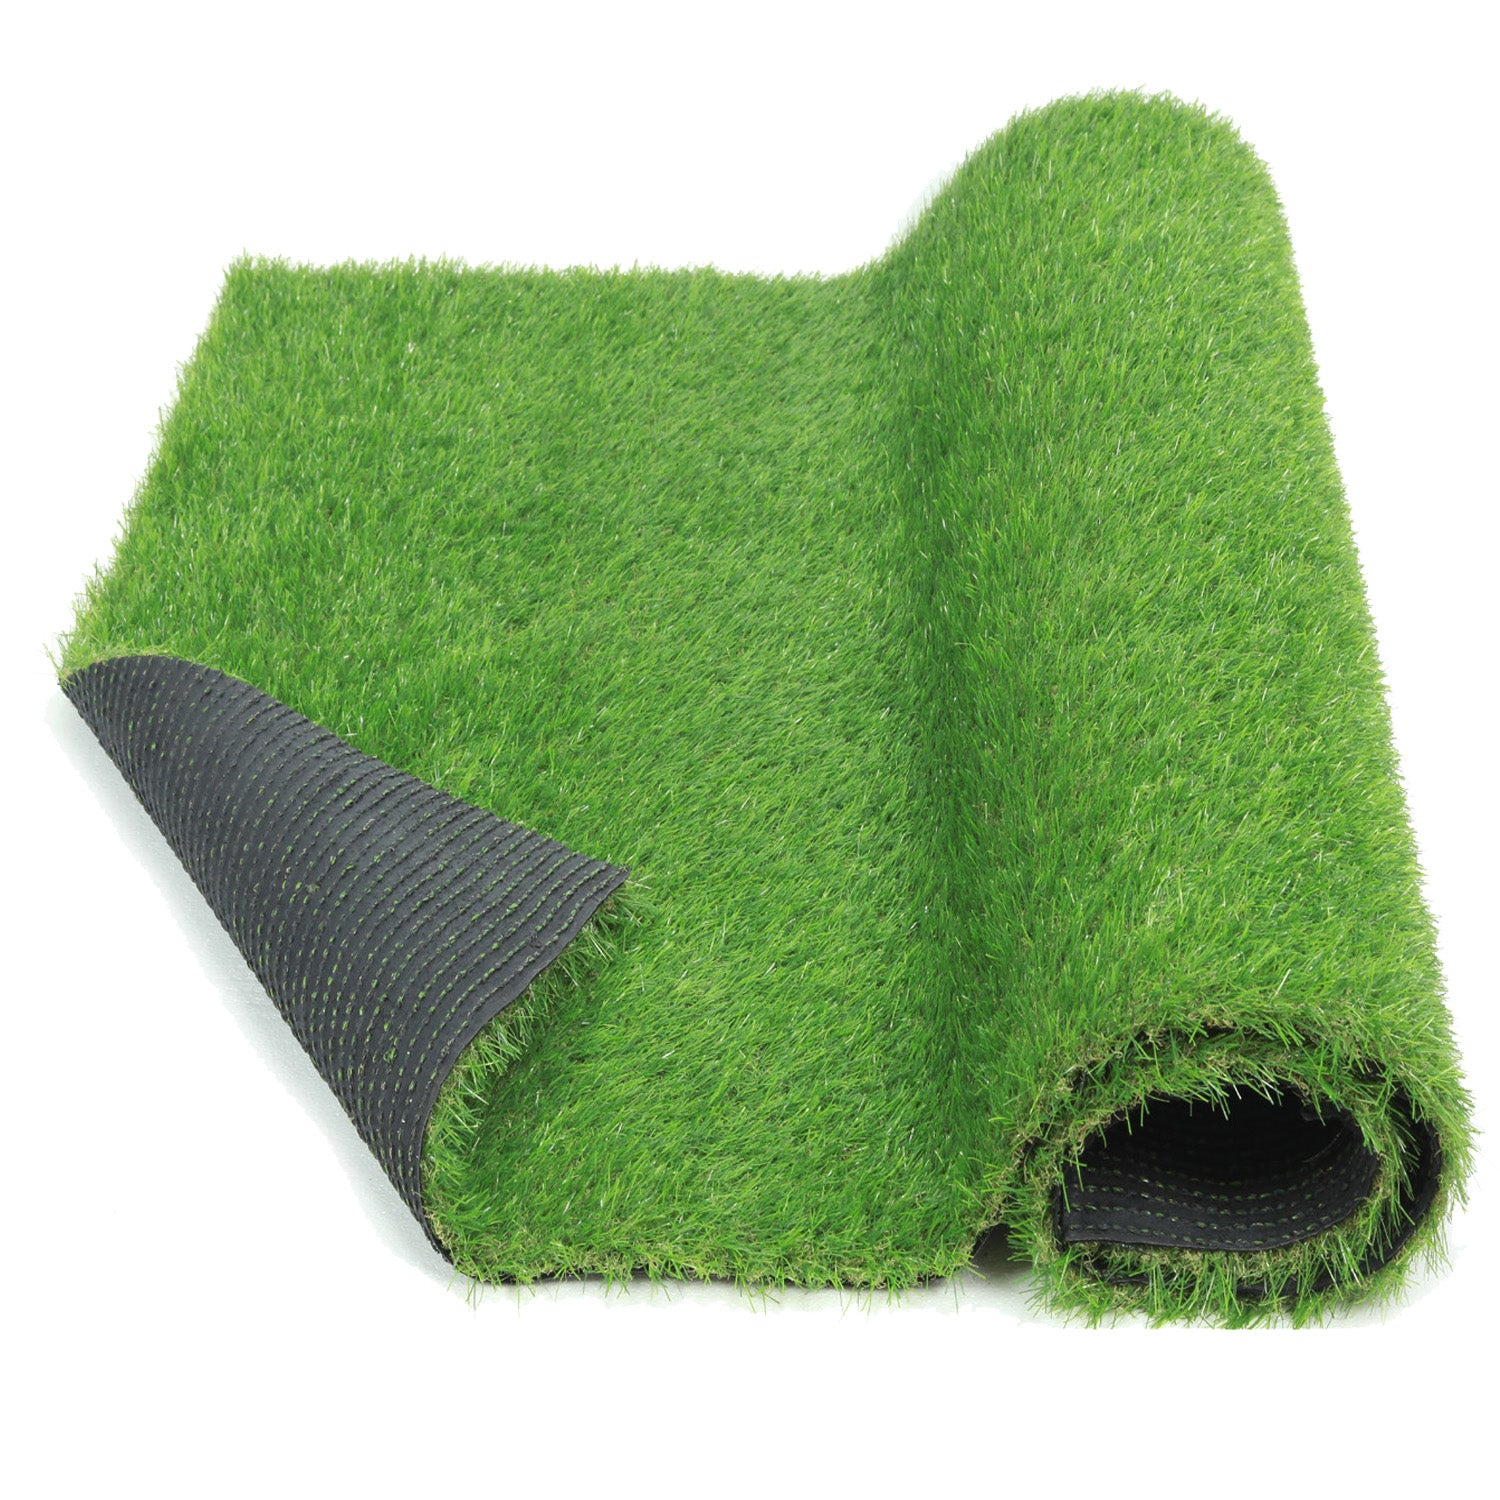 Eco Matrix Artificial Grass Rug Fake Grass Carpet Green Lawn Mats Realistic Indoor Outdoor Grass Runner Landscape Synthetic Grass Turf For Dog